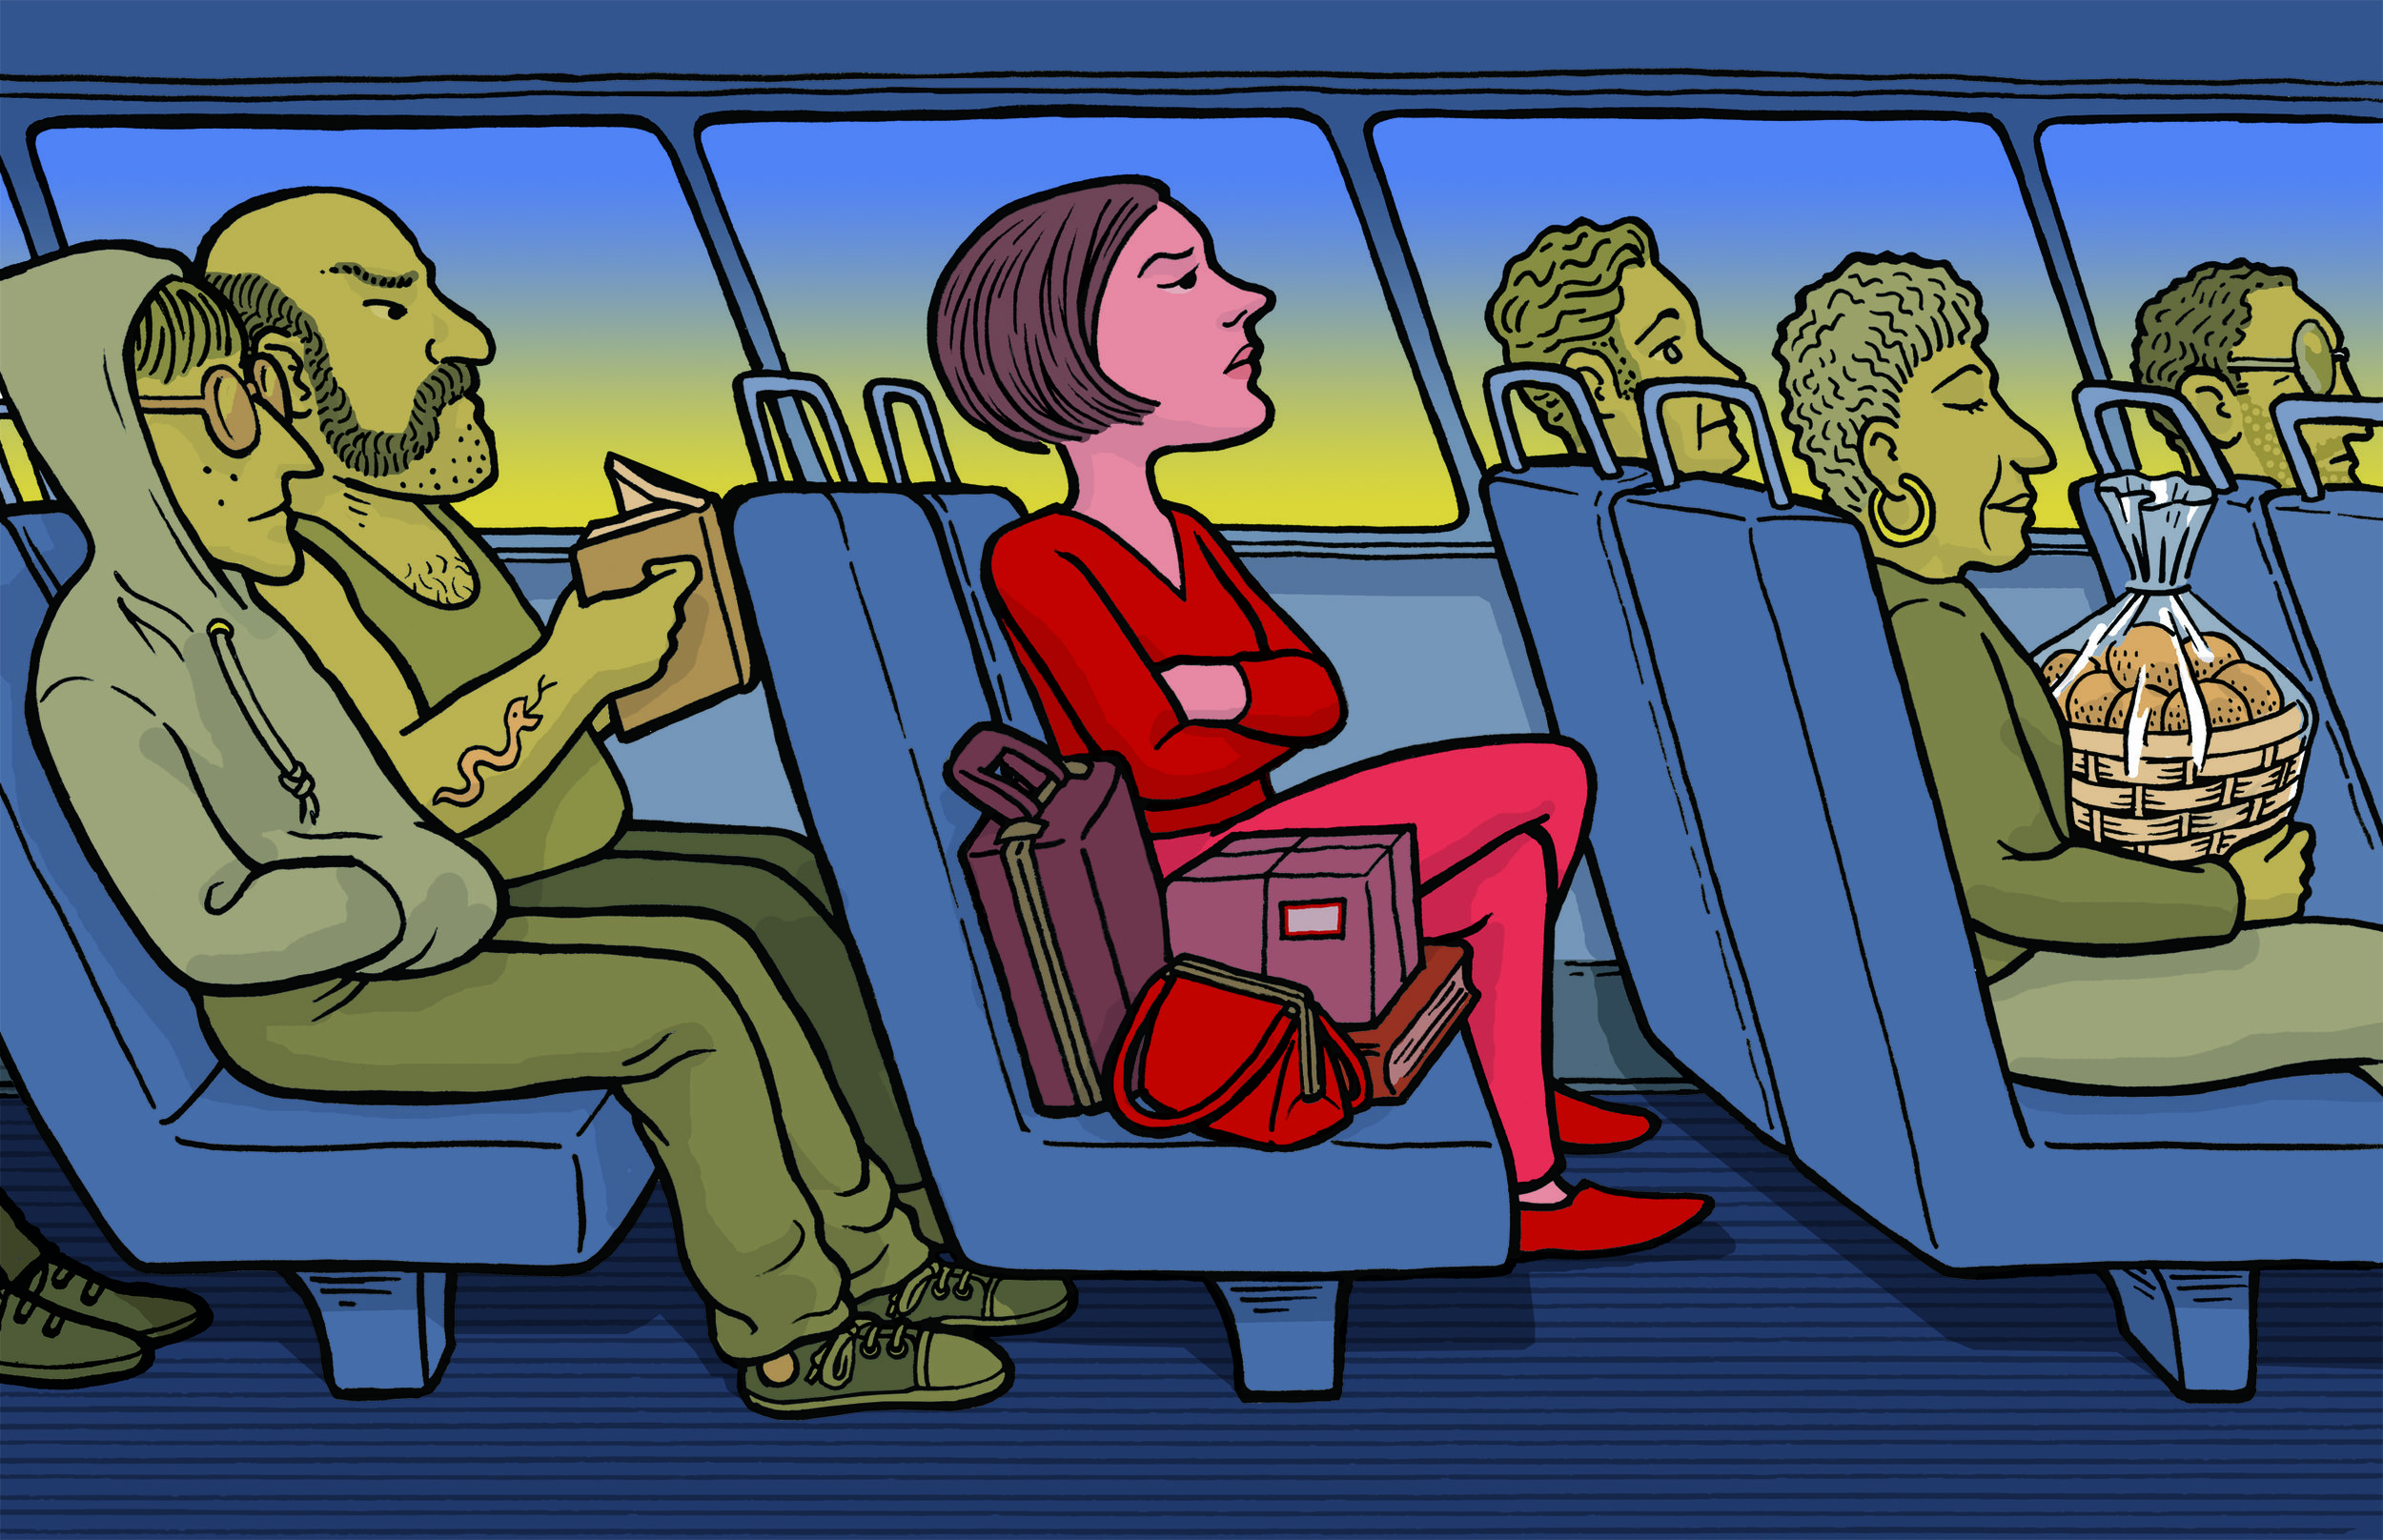 bus seat psych color.jpg